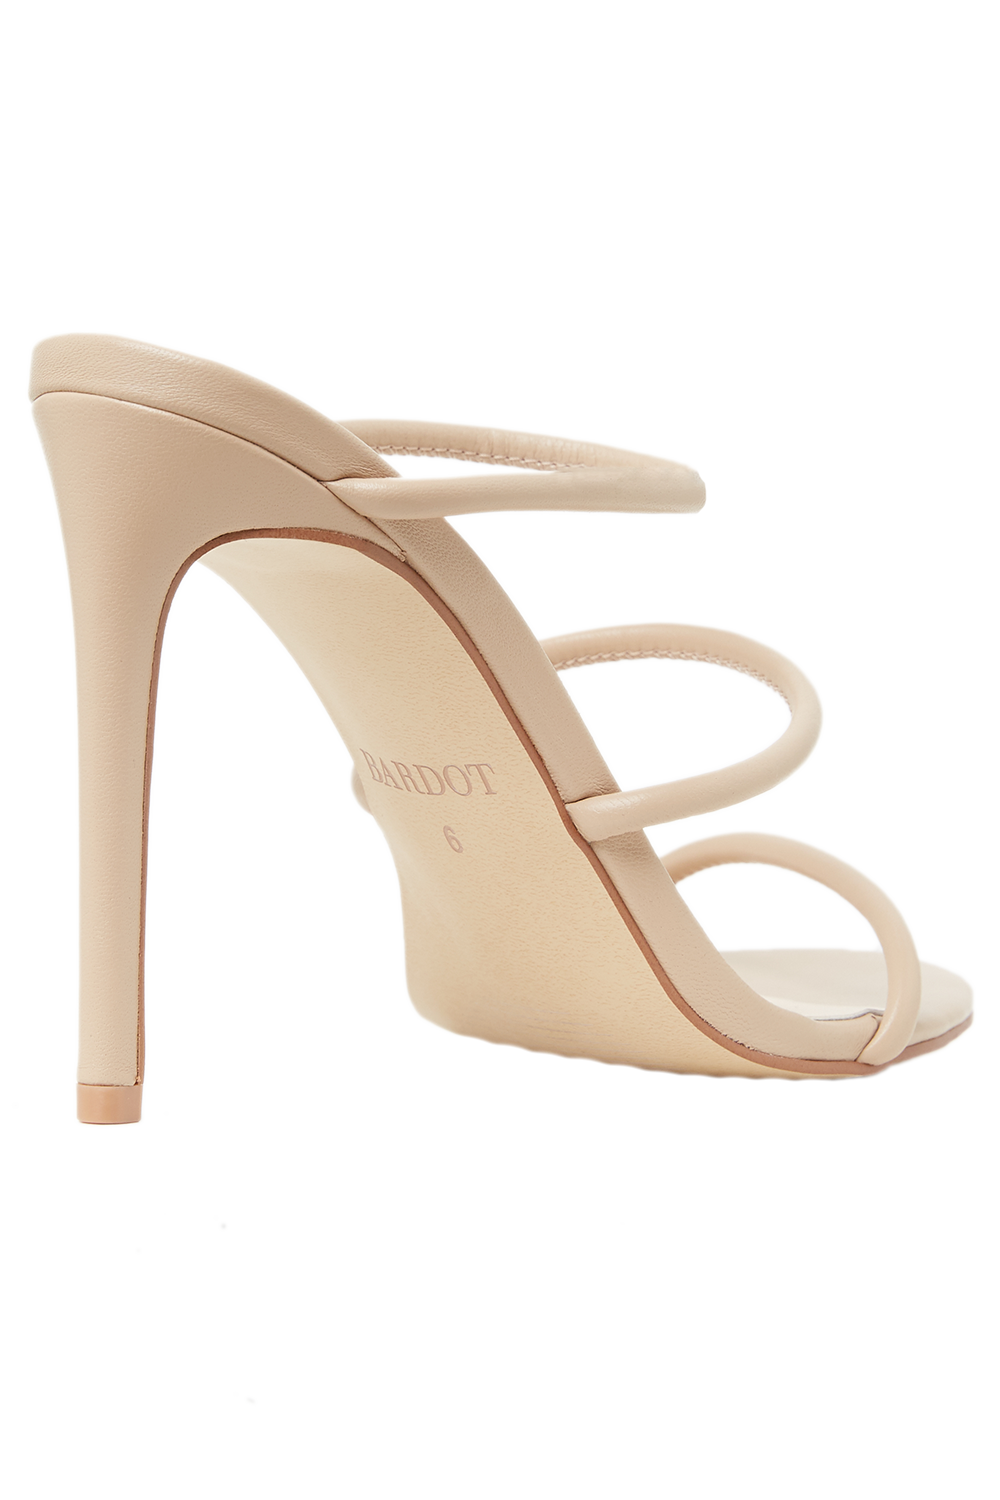 TRI LEATHER STRAP HEEL in colour RUGBY TAN